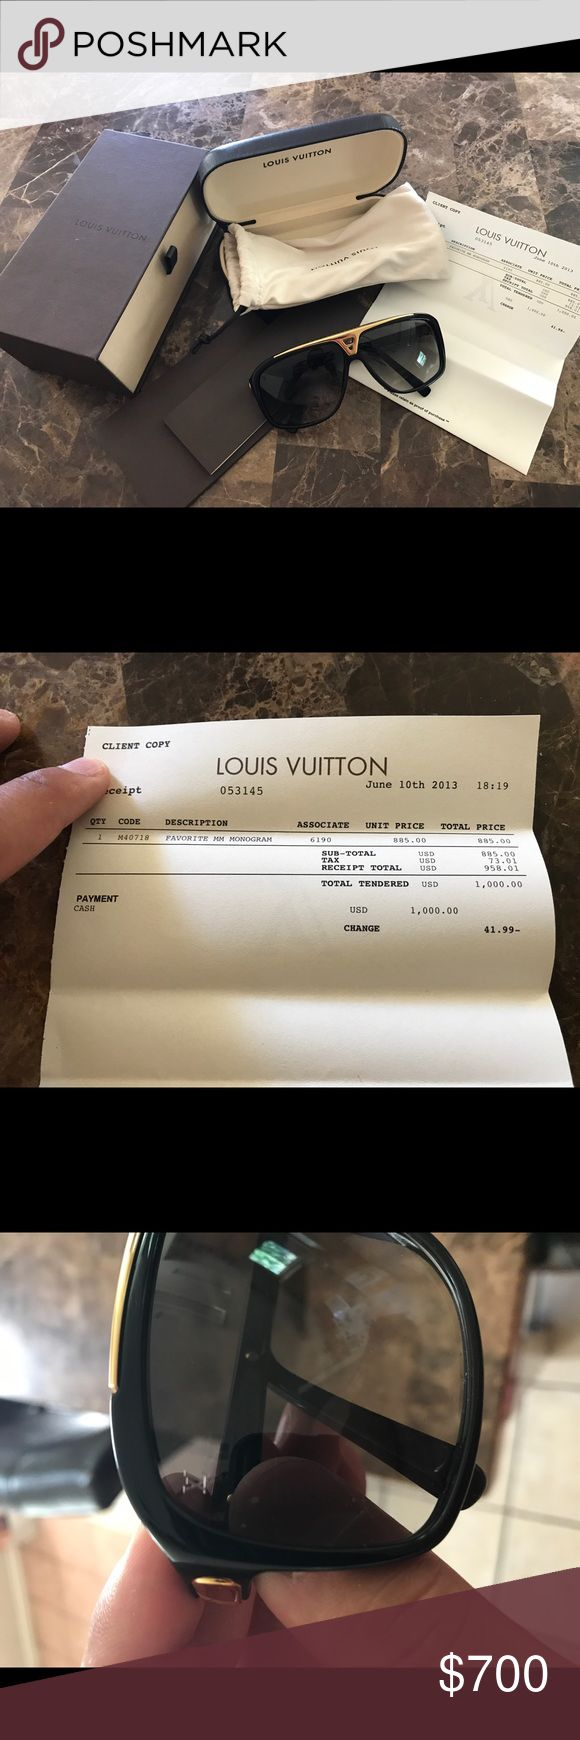 Louis Vuitton evidence sunglasses Worn 2-3 times. Don't have any use for them. They're practically brand new. I have receipts and all boxes for the sunglasses. Louis Vuitton Accessories Sunglasses